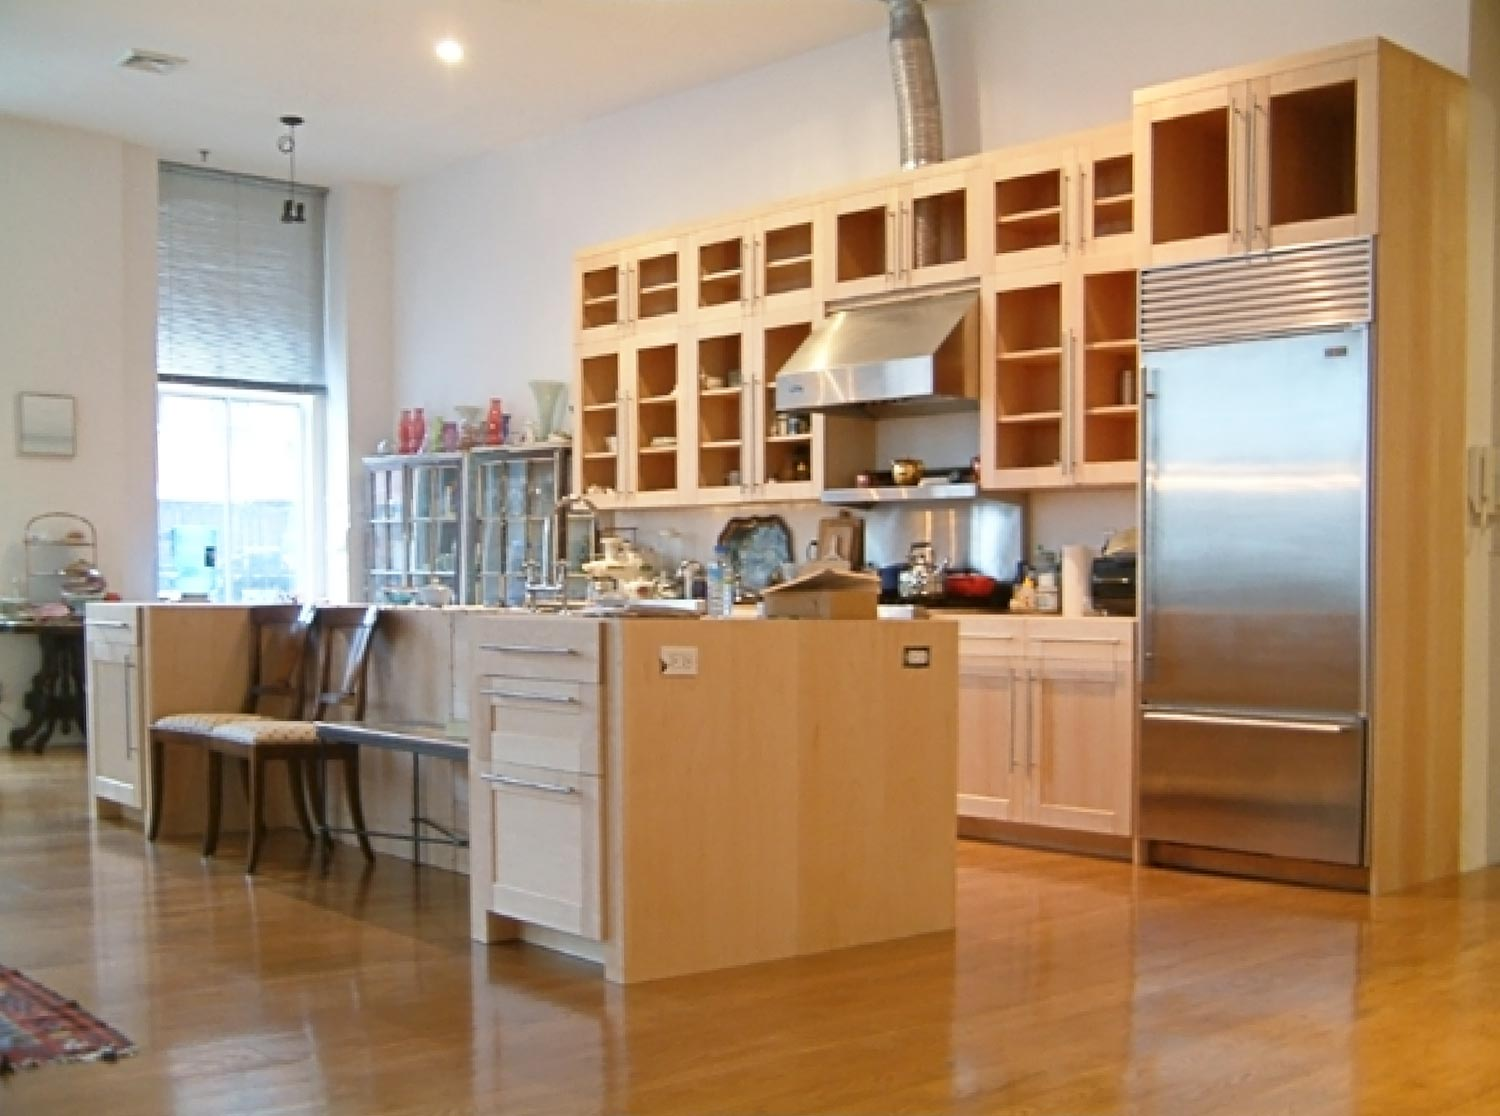 The open kitchen is off the living room at this Tribeca loft project by OCV Architects.